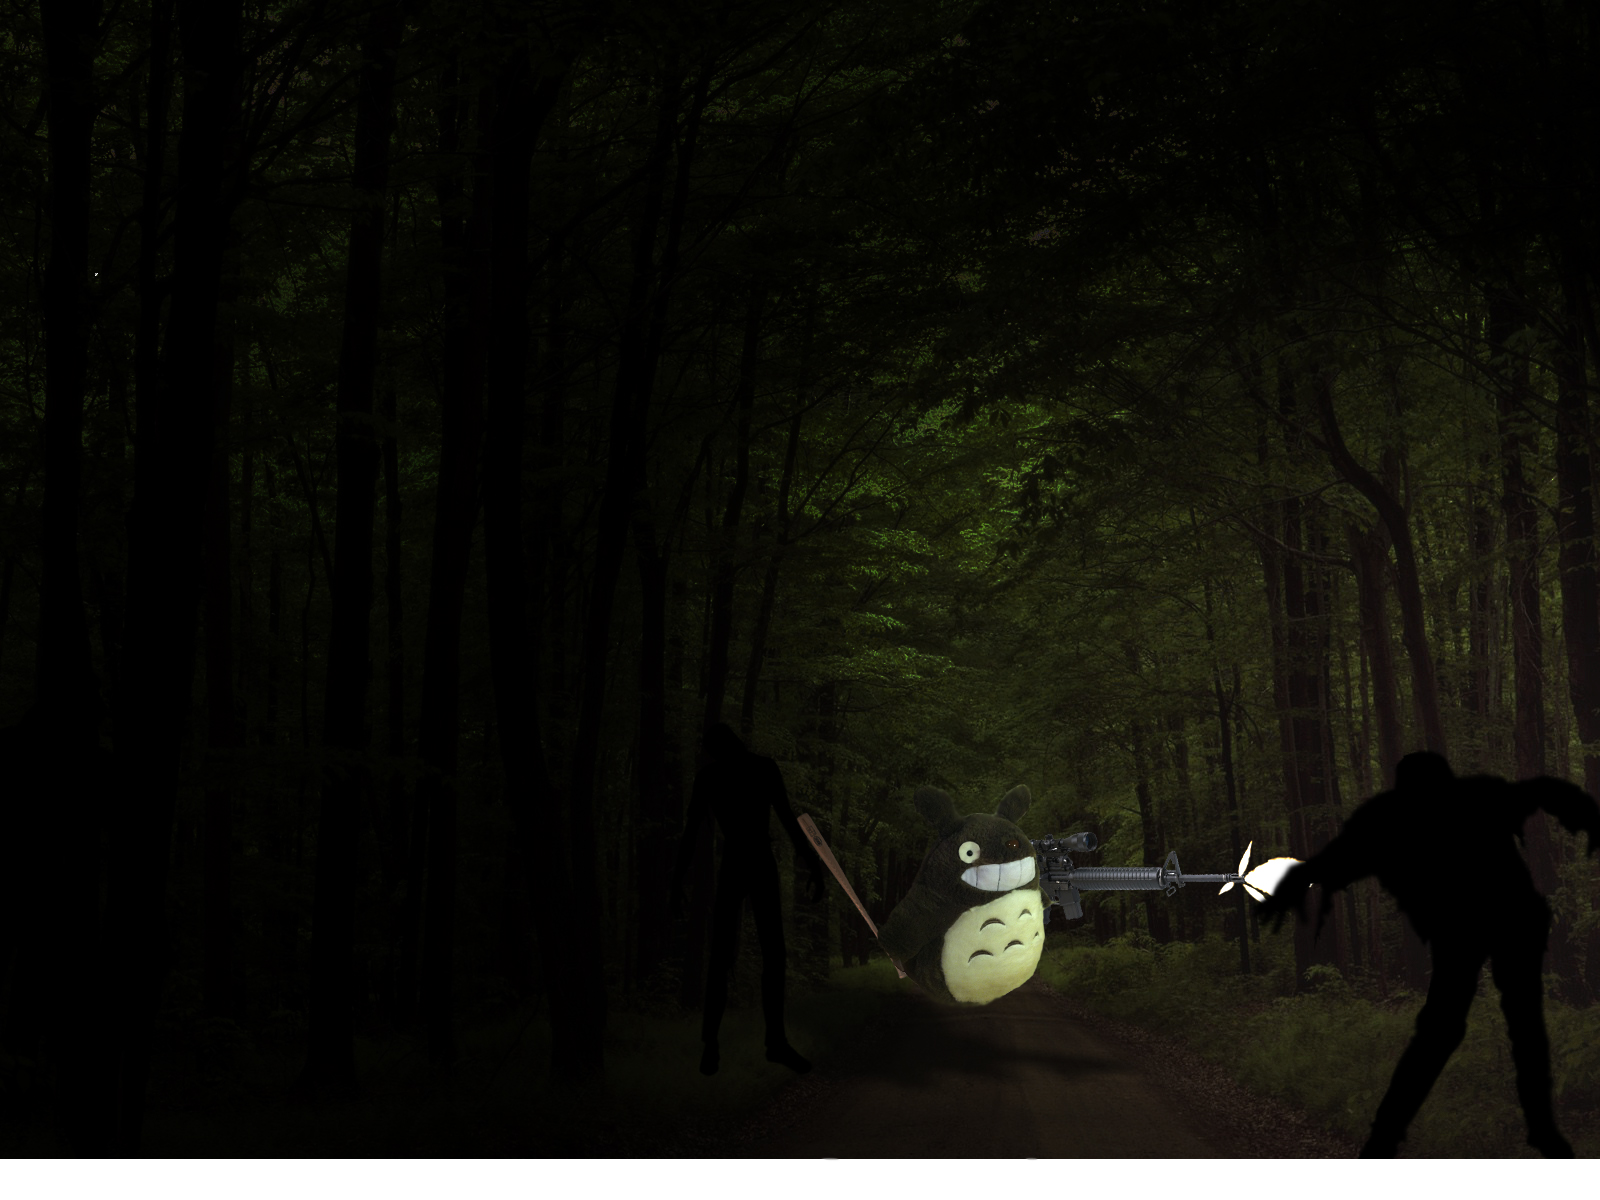 How to make an awesome zombie-fighting scene in Photoshop